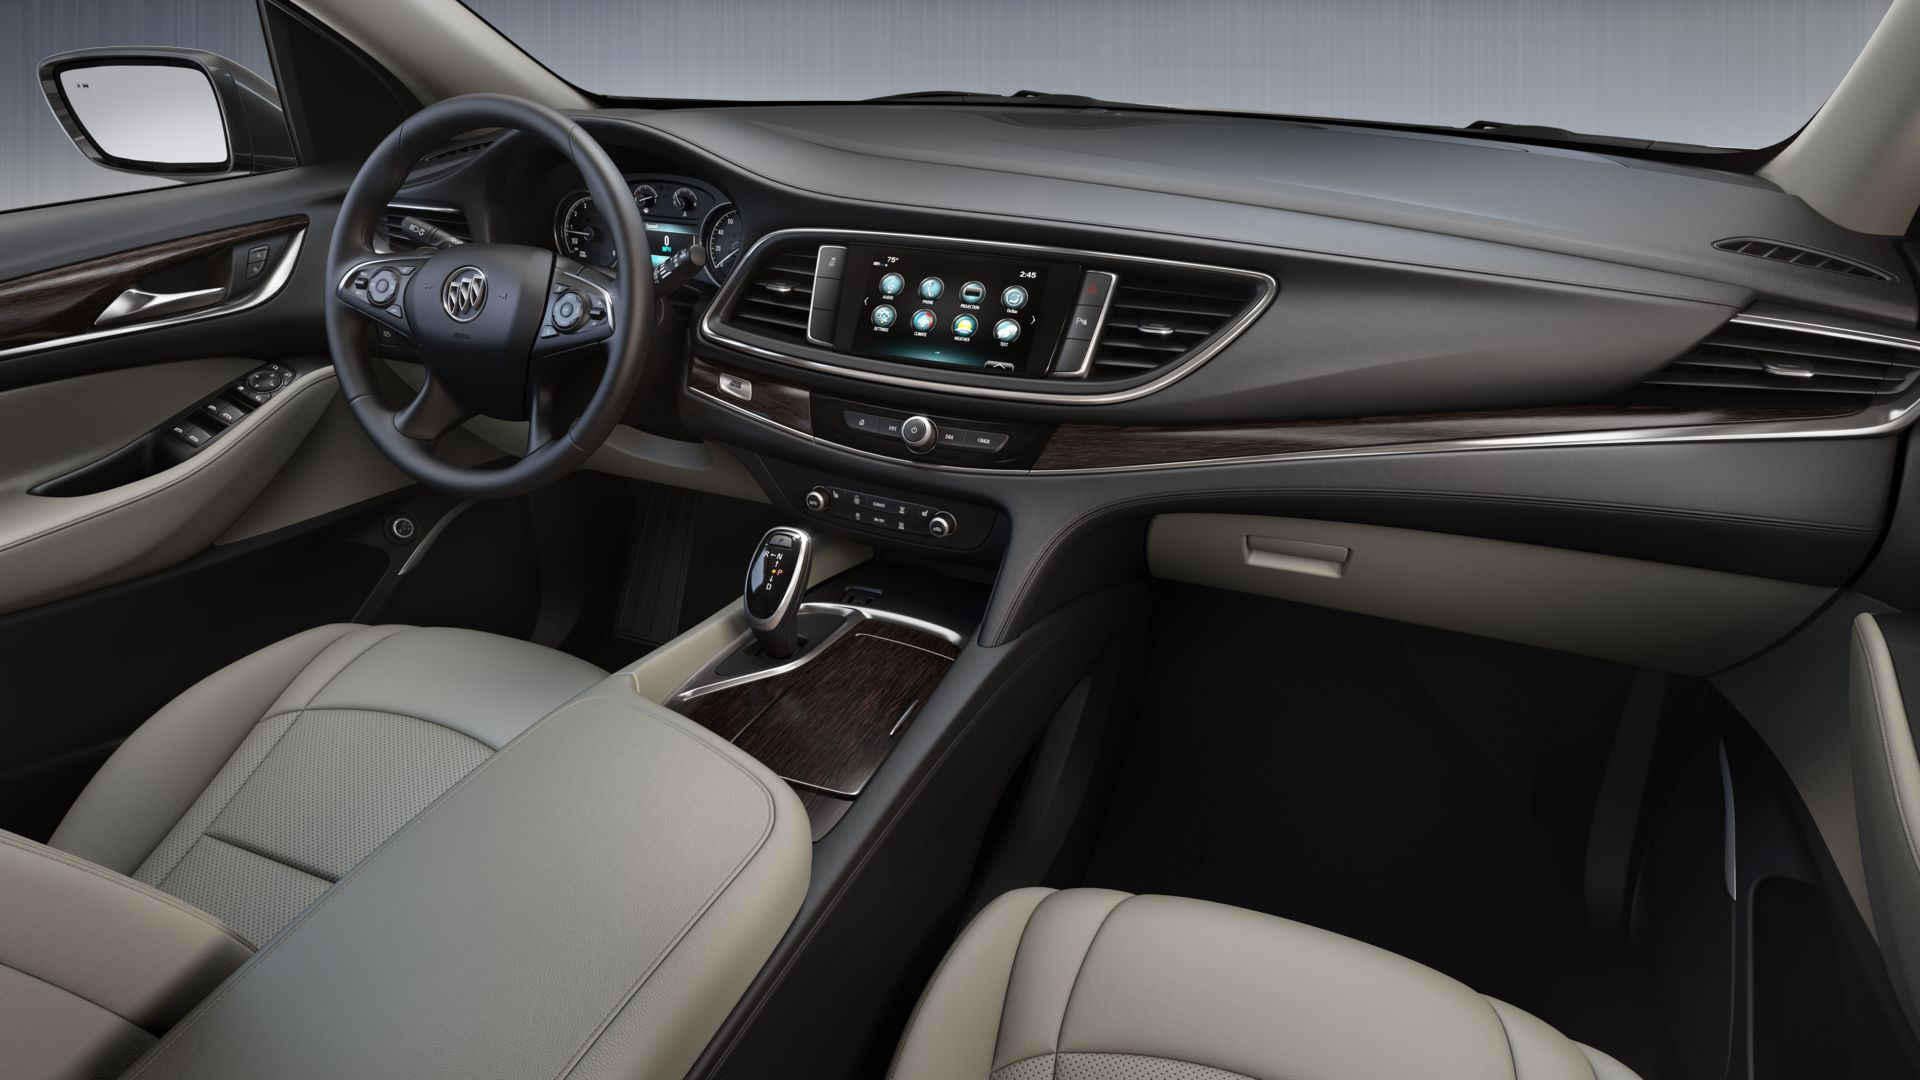 2021 buick enclave review pricing performance features